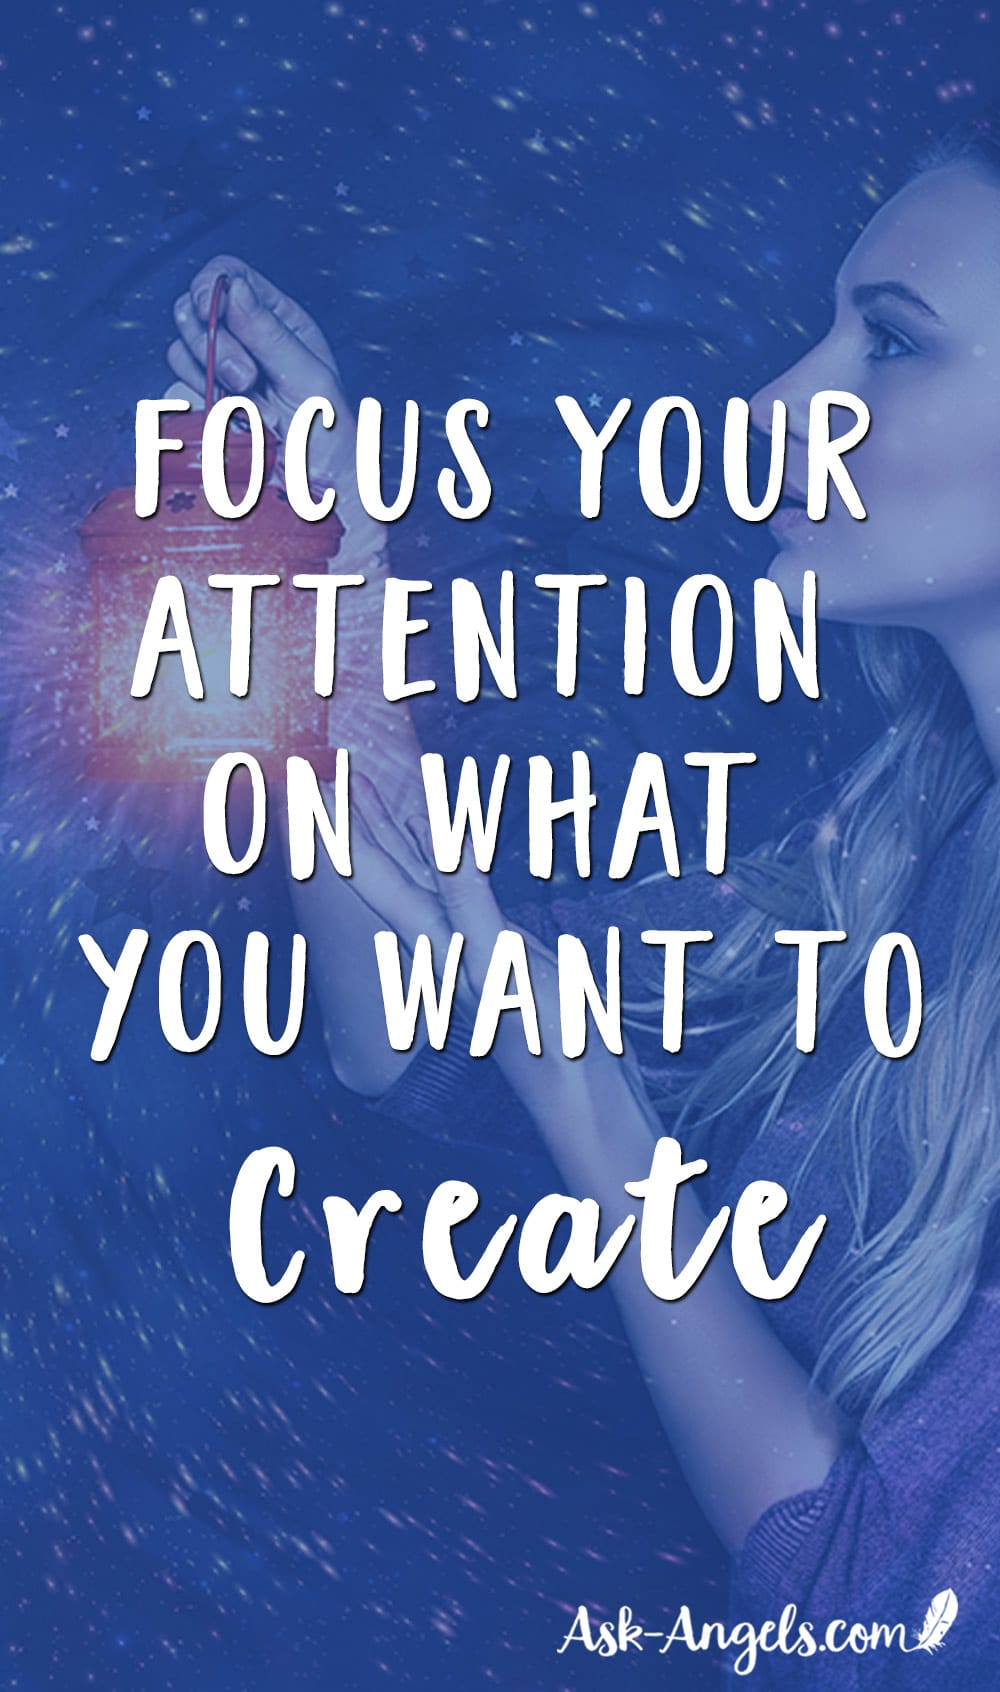 Focus Your Attention On What You Want to Create